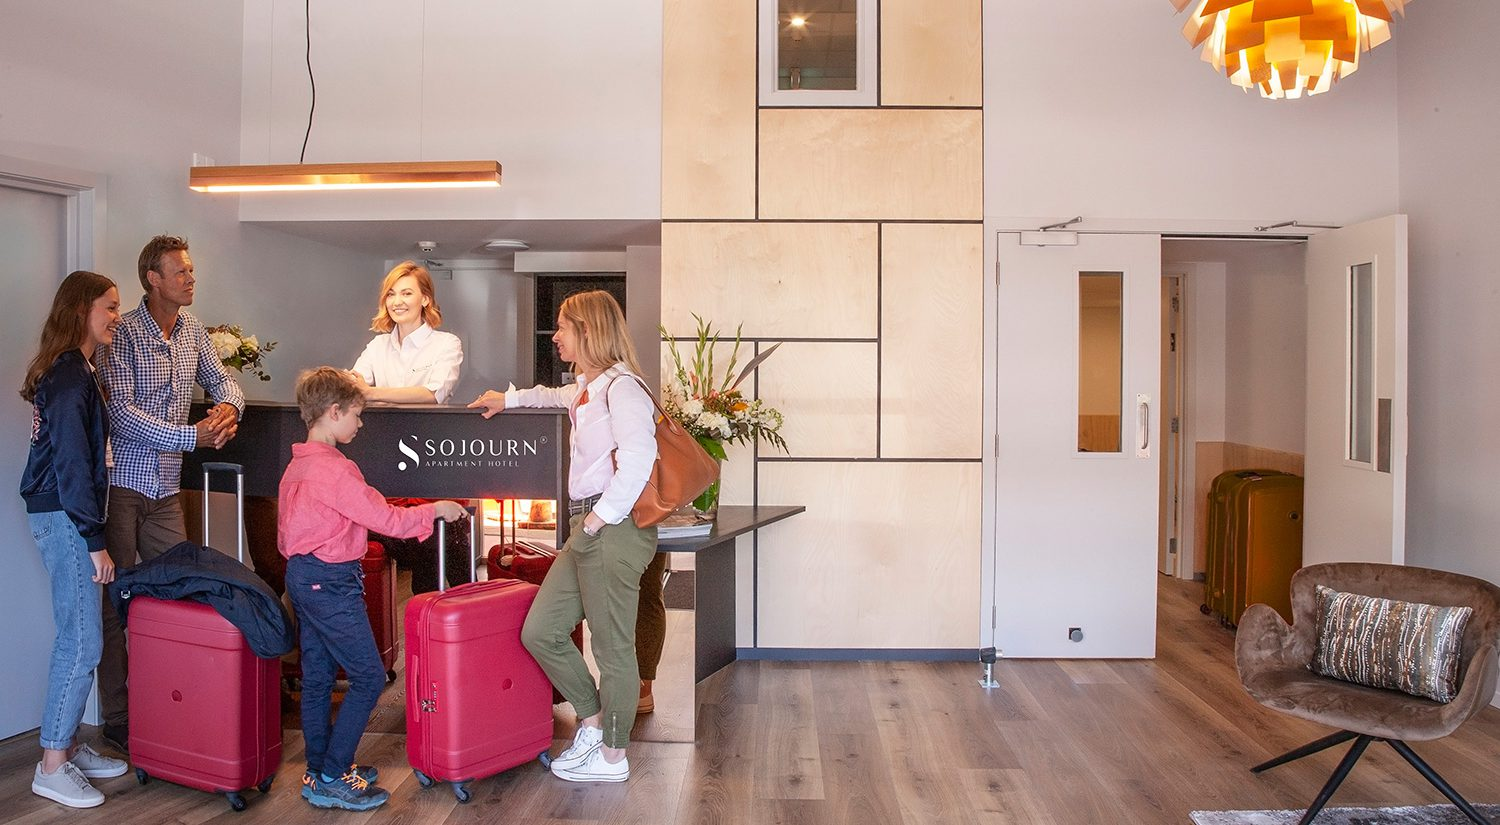 newtown-wellington-apartment-hotel-accommodation-family-check-in | Sojourn®